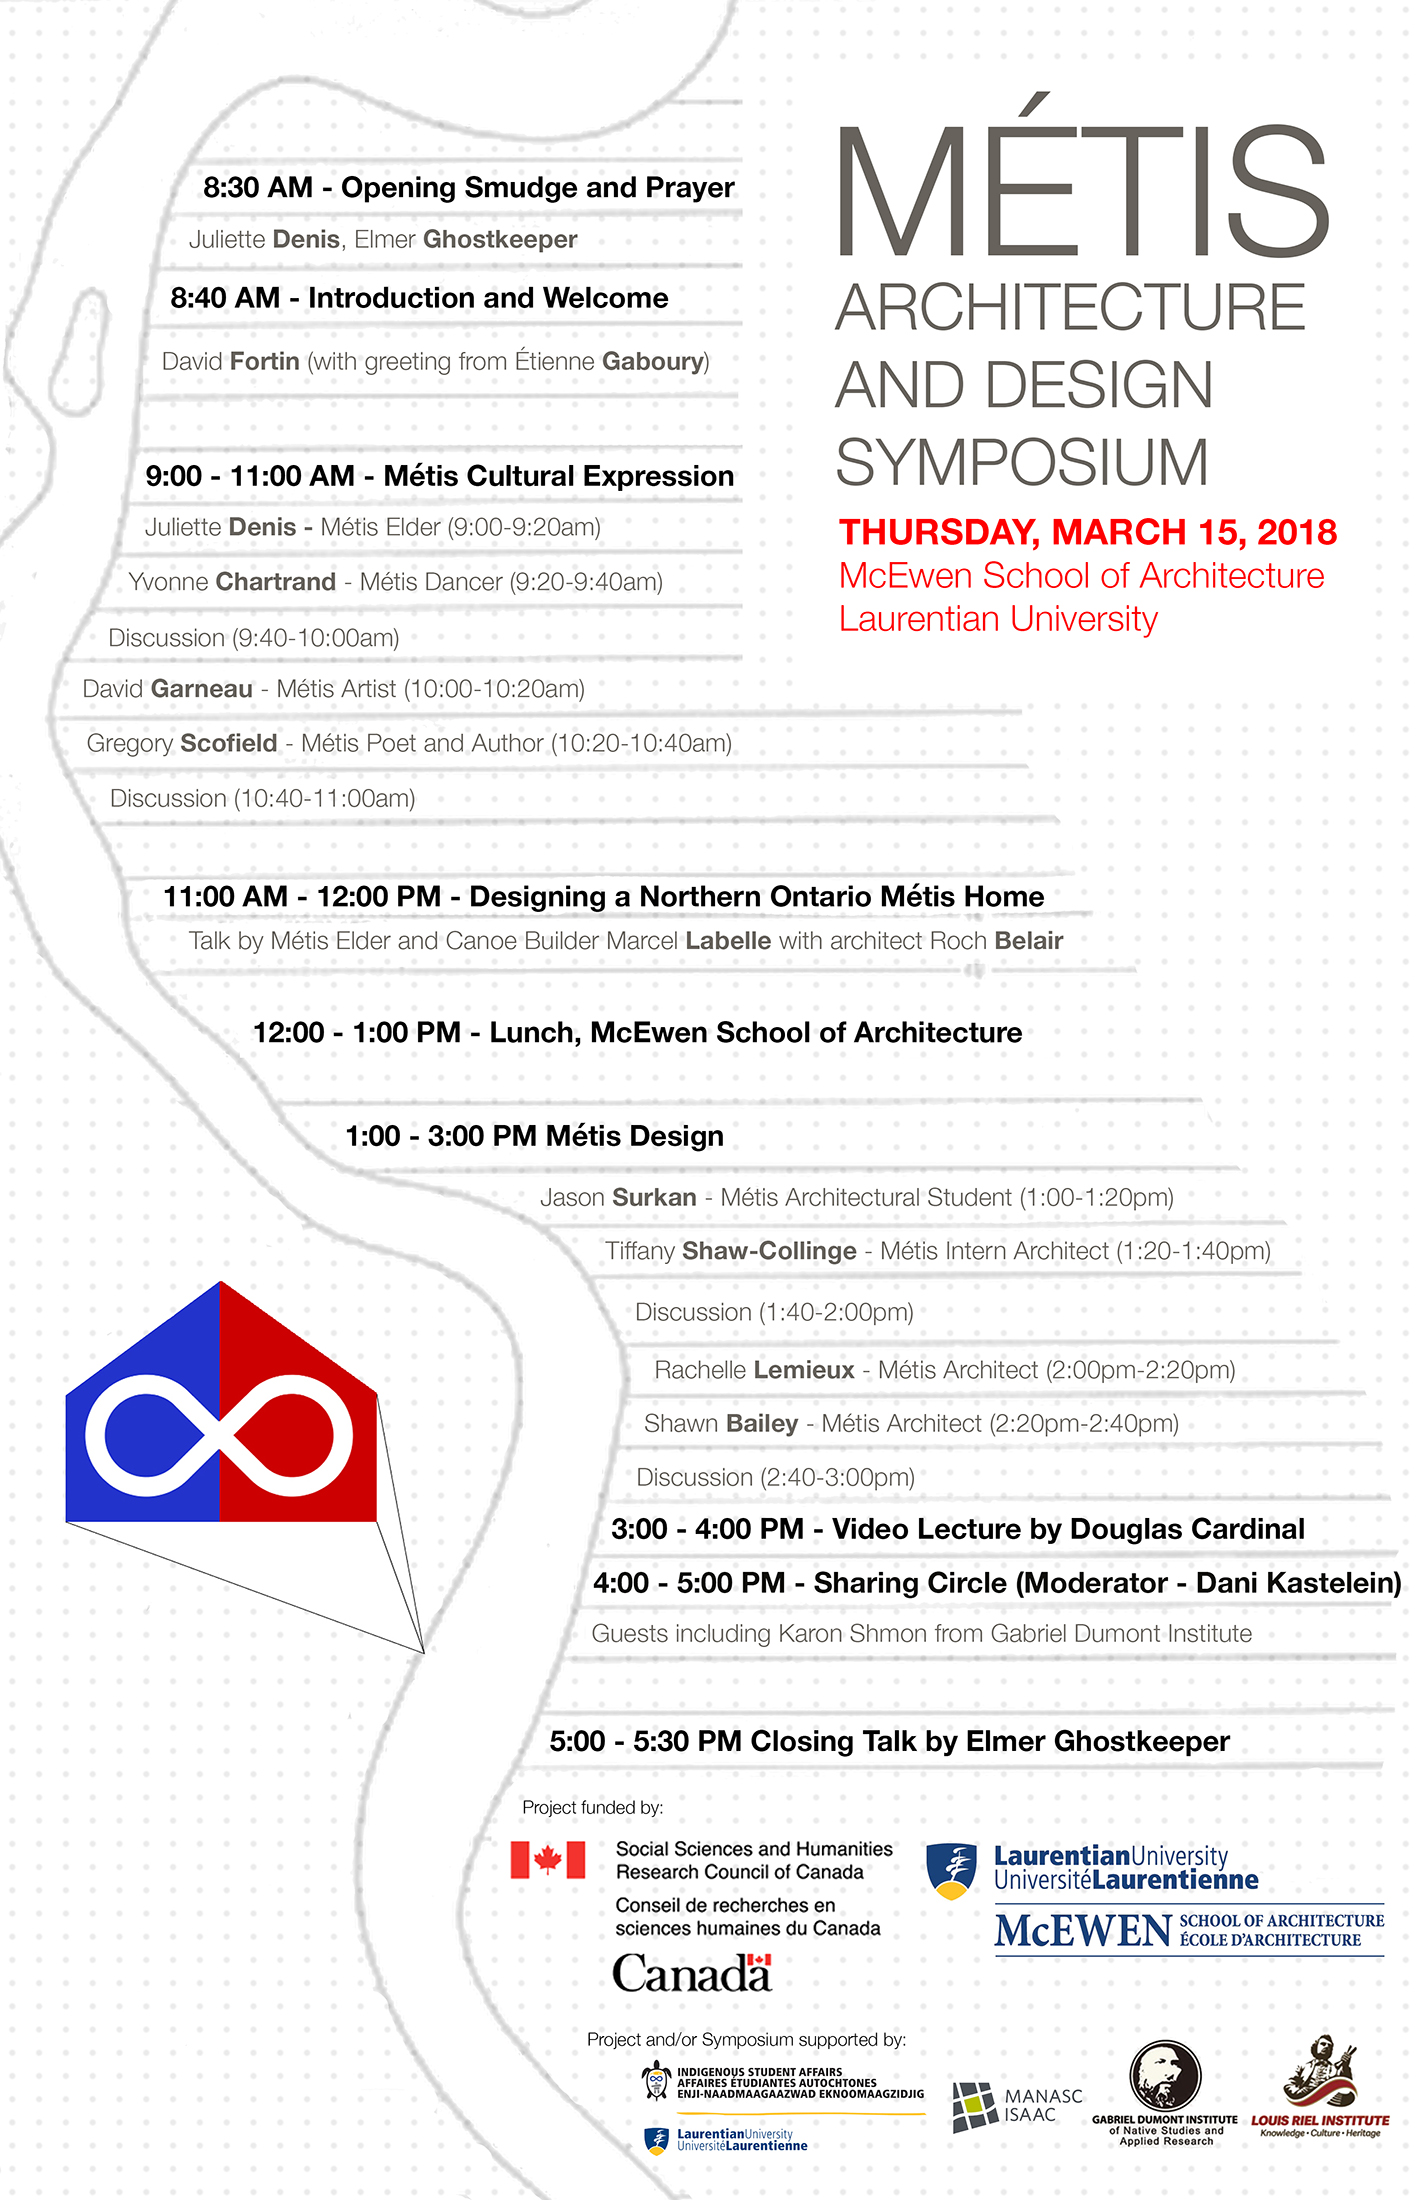 The poster for the 2018 Métis Architecture and Design Symposium at Laurentian University's McEwen School of Architecture